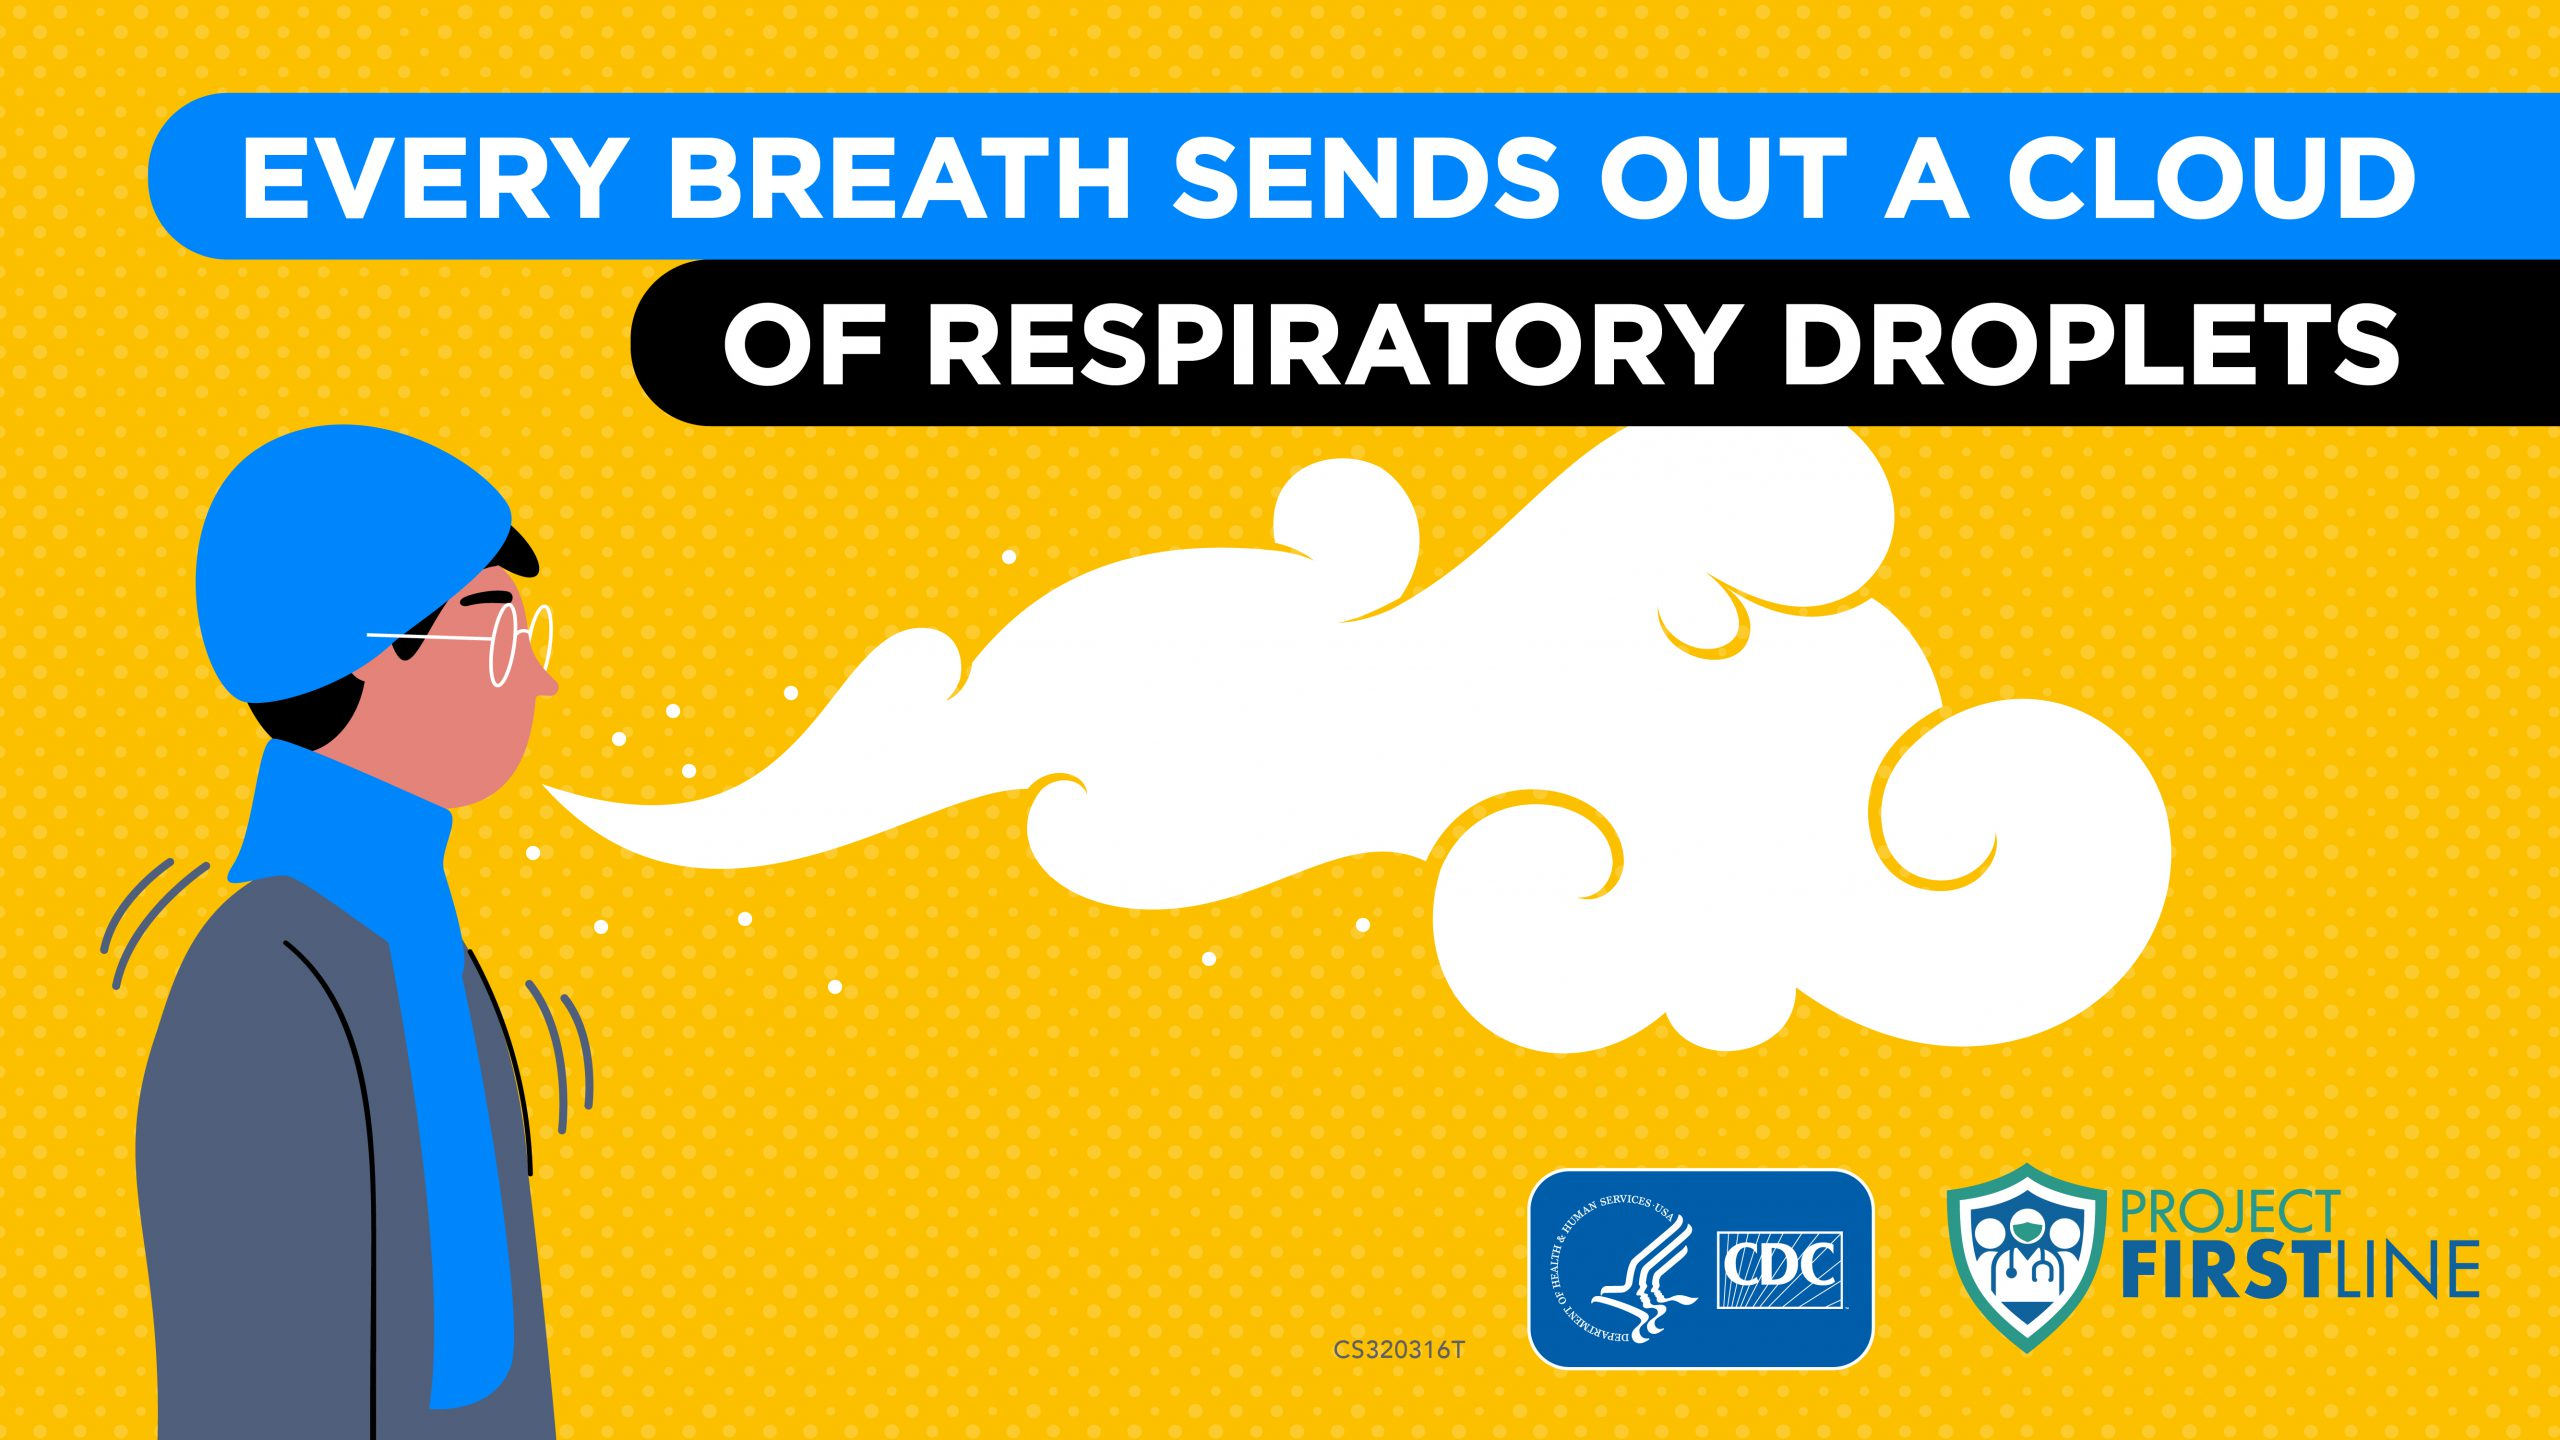 Every breath sends out a cloud of respiratory droplets